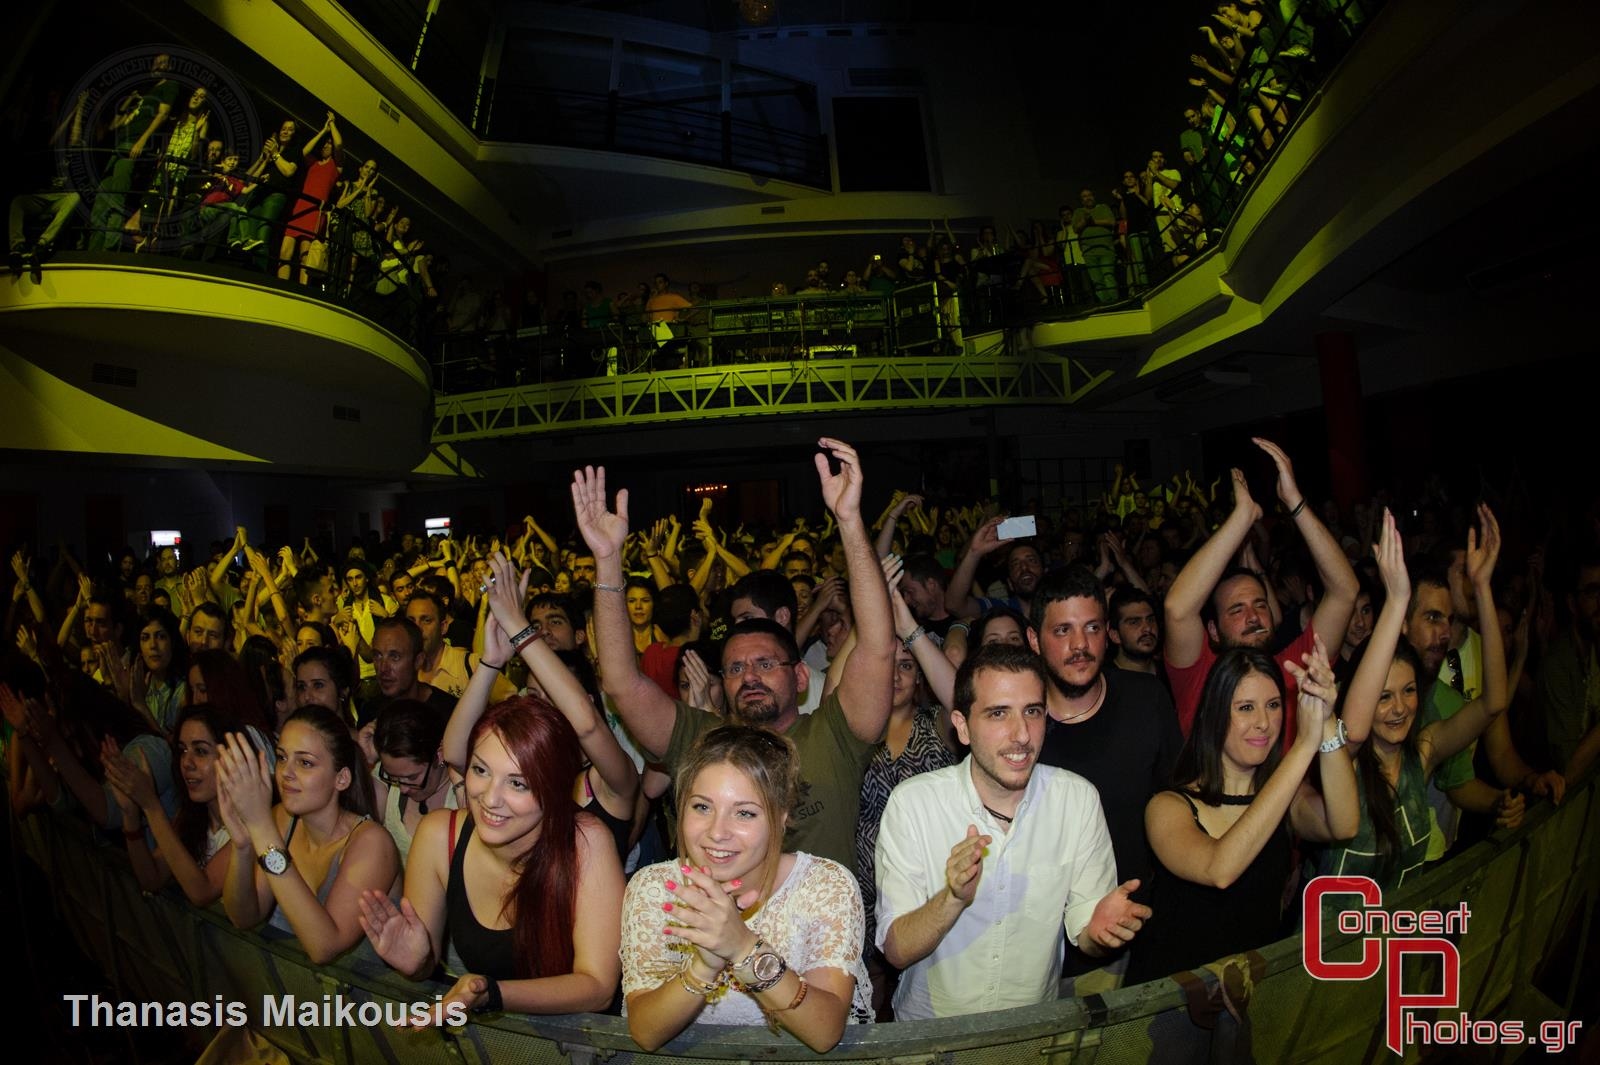 Παύλος Παυλίδης-Pavlidis-stage-volume1 photographer: Thanasis Maikousis - concertphotos_20140611_23_04_55